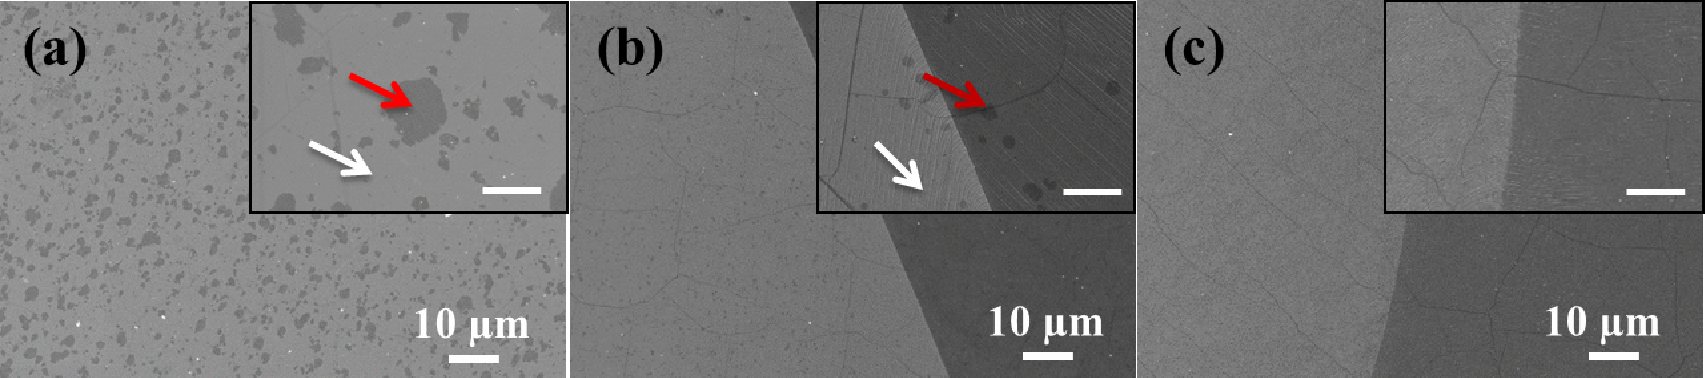 Optimisation of the graphene CVD process on Cu foils (inset scale bars are 2 µm). Monolayer (respectively bilayer) areas are shown by white (red) arrows, from Deokar et al. Carbon 89, 82 (2015).